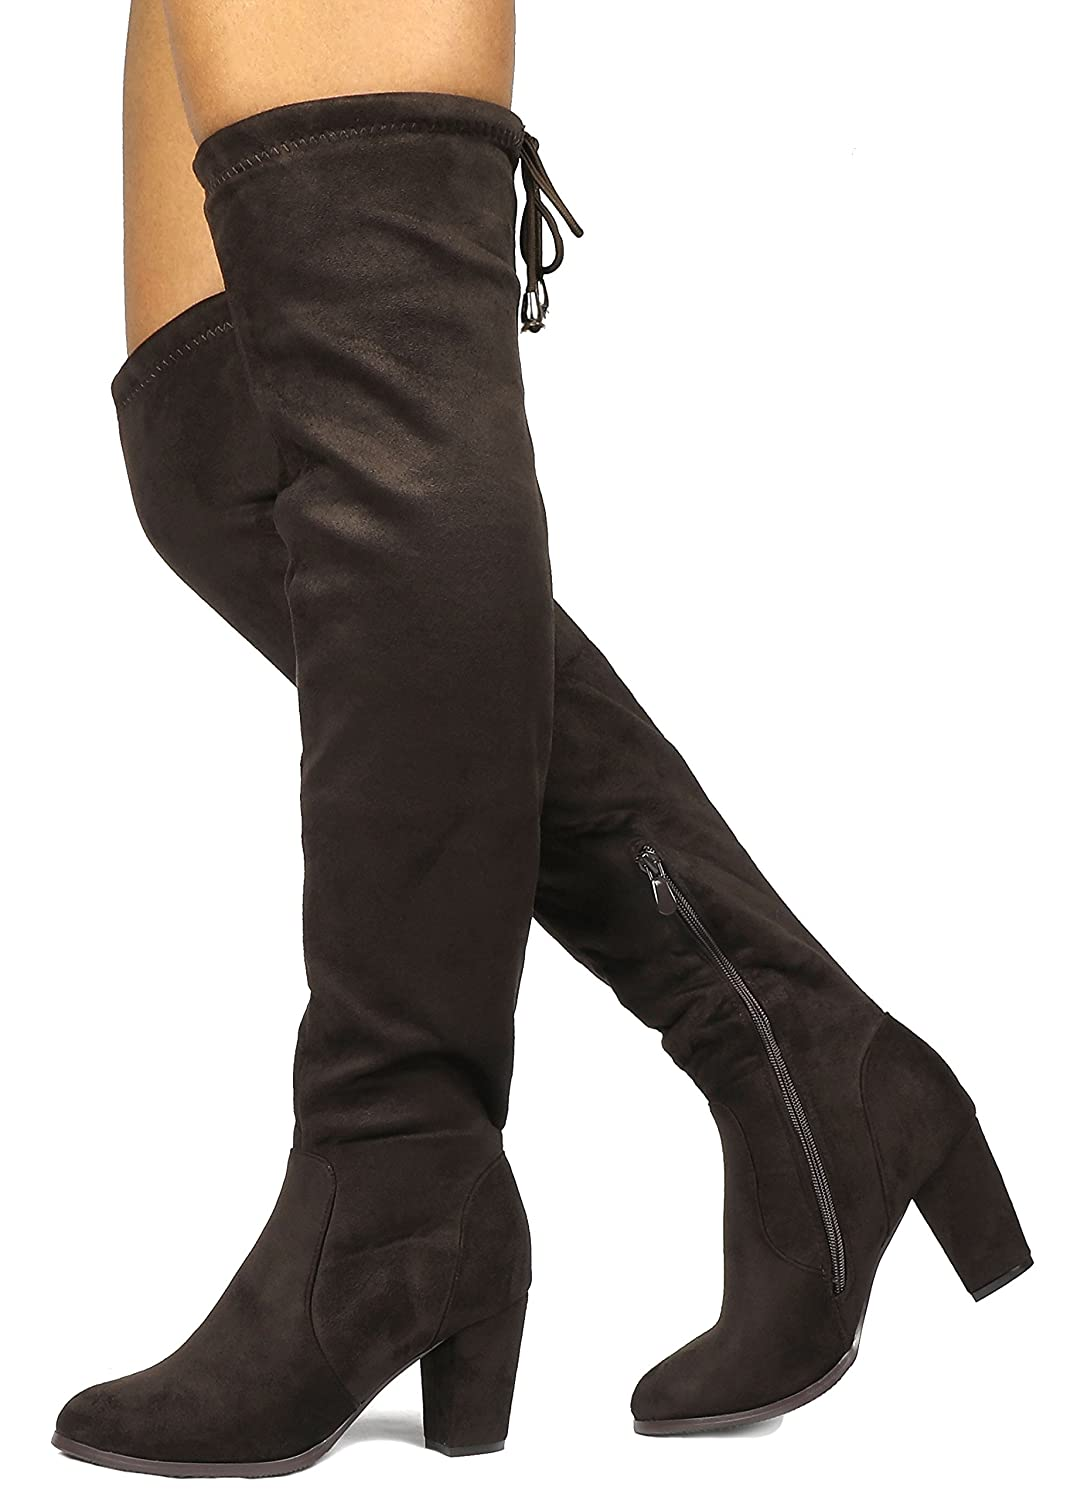 DREAM PAIRS Women's Thigh High Fashion Over The Knee Thigh High Block Heel Boots